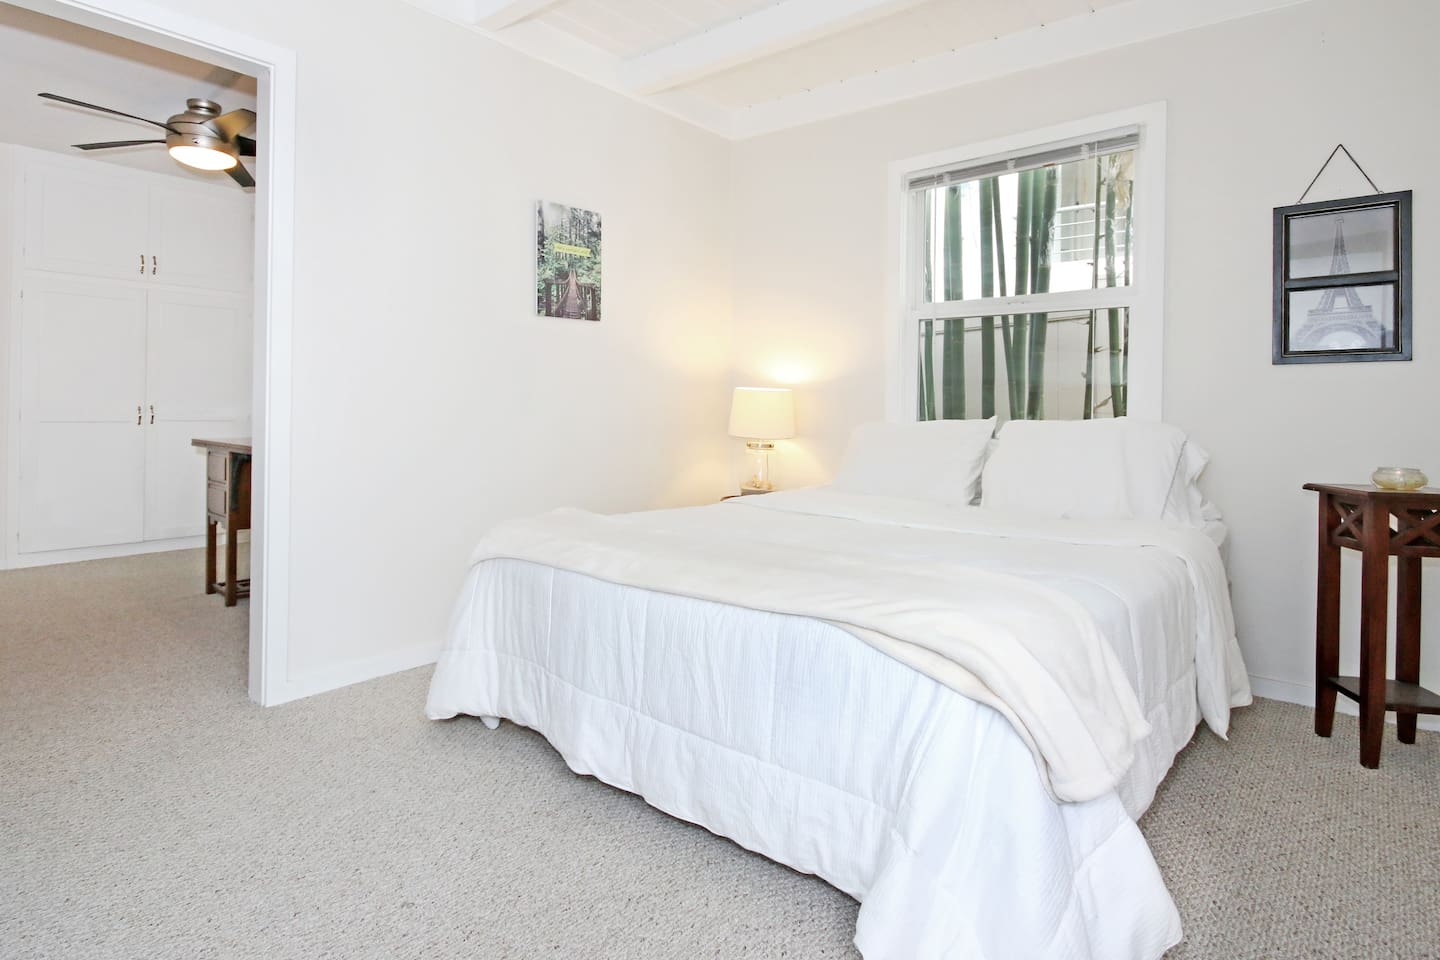 Full-sized bed, fresh linens, spacious bedroom